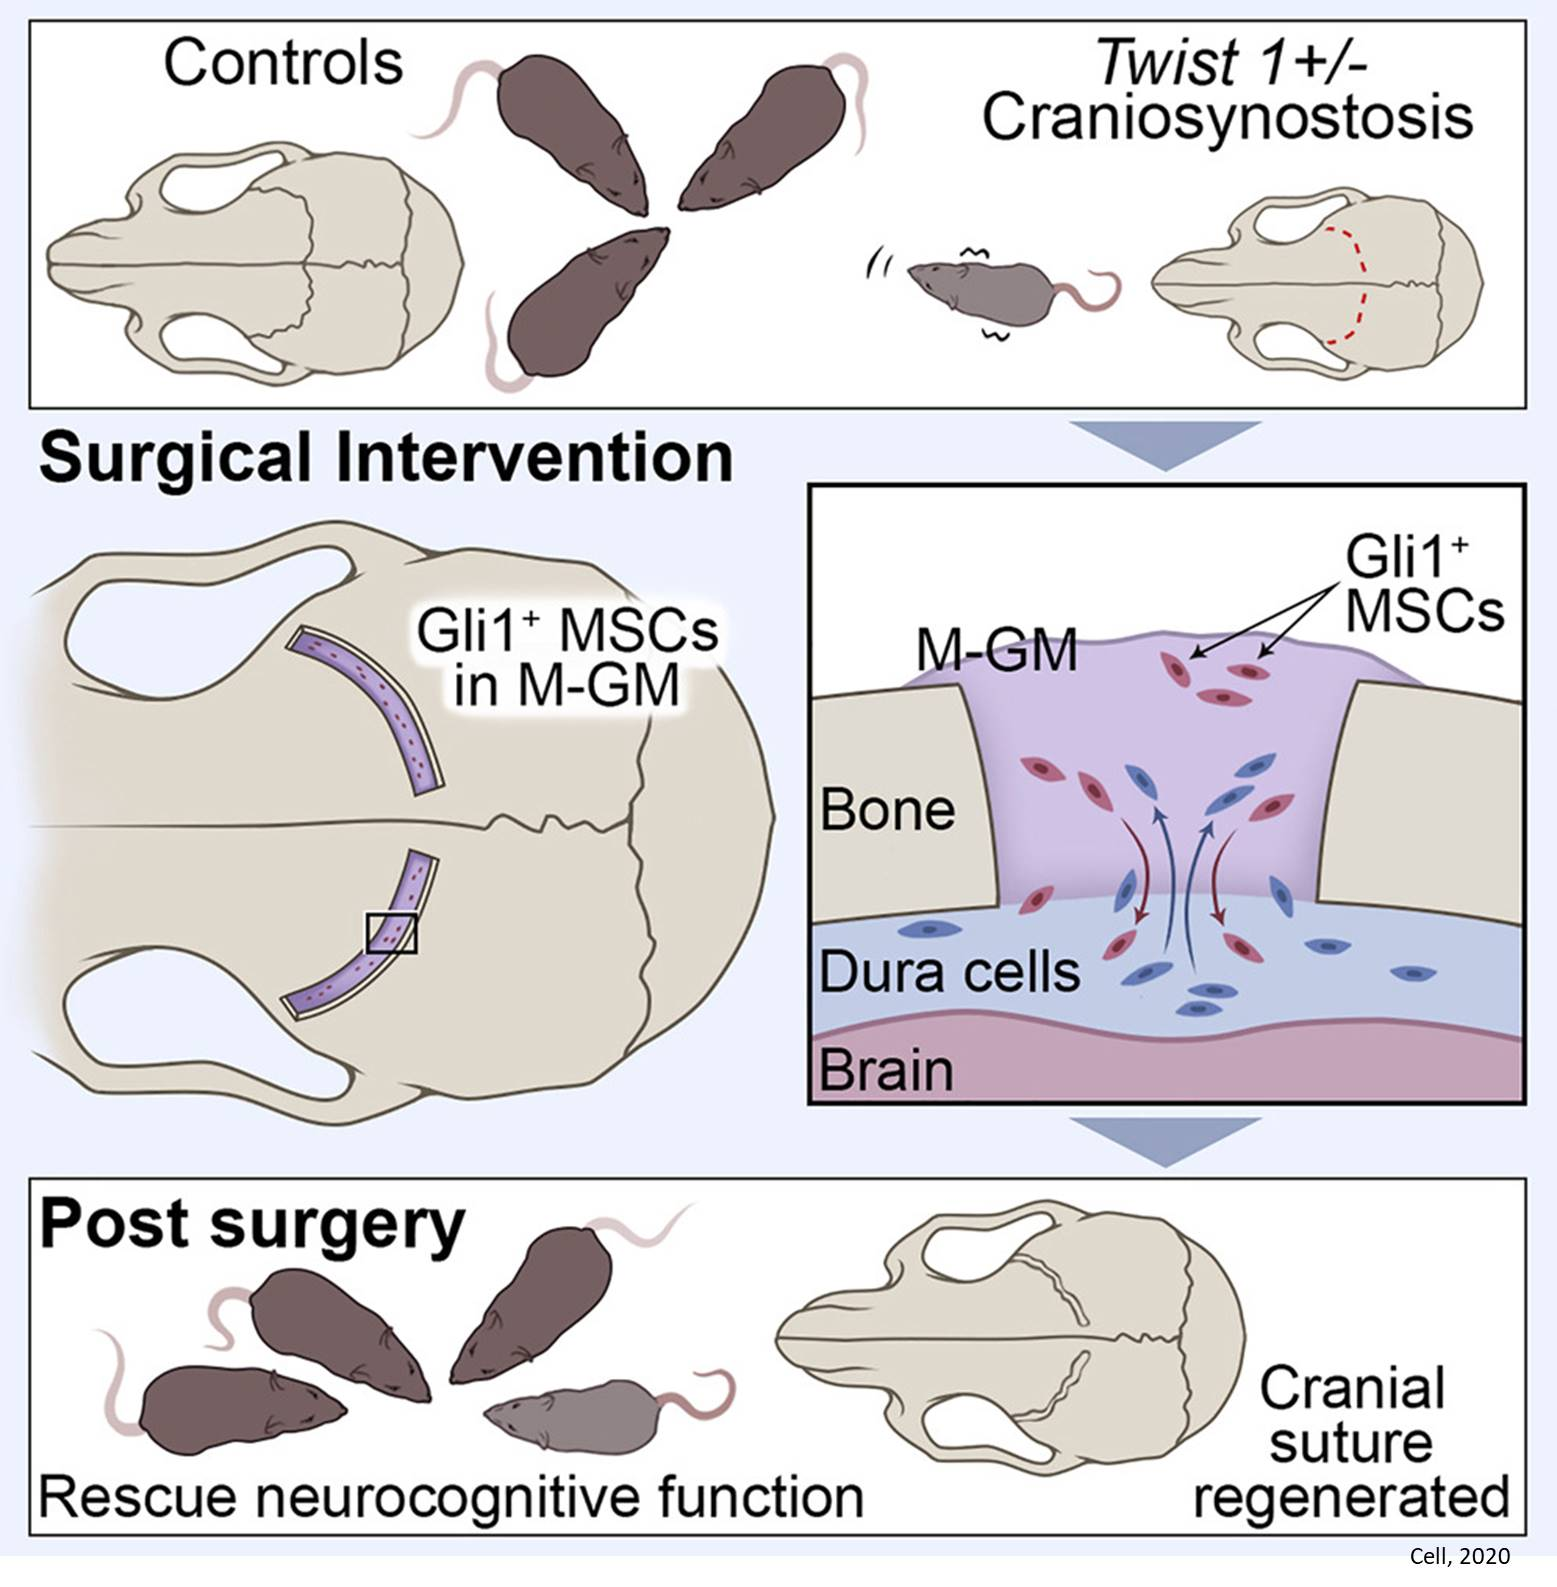 Cranial suture regeneration and neurocognitive defect mitigation by stem cell therapy